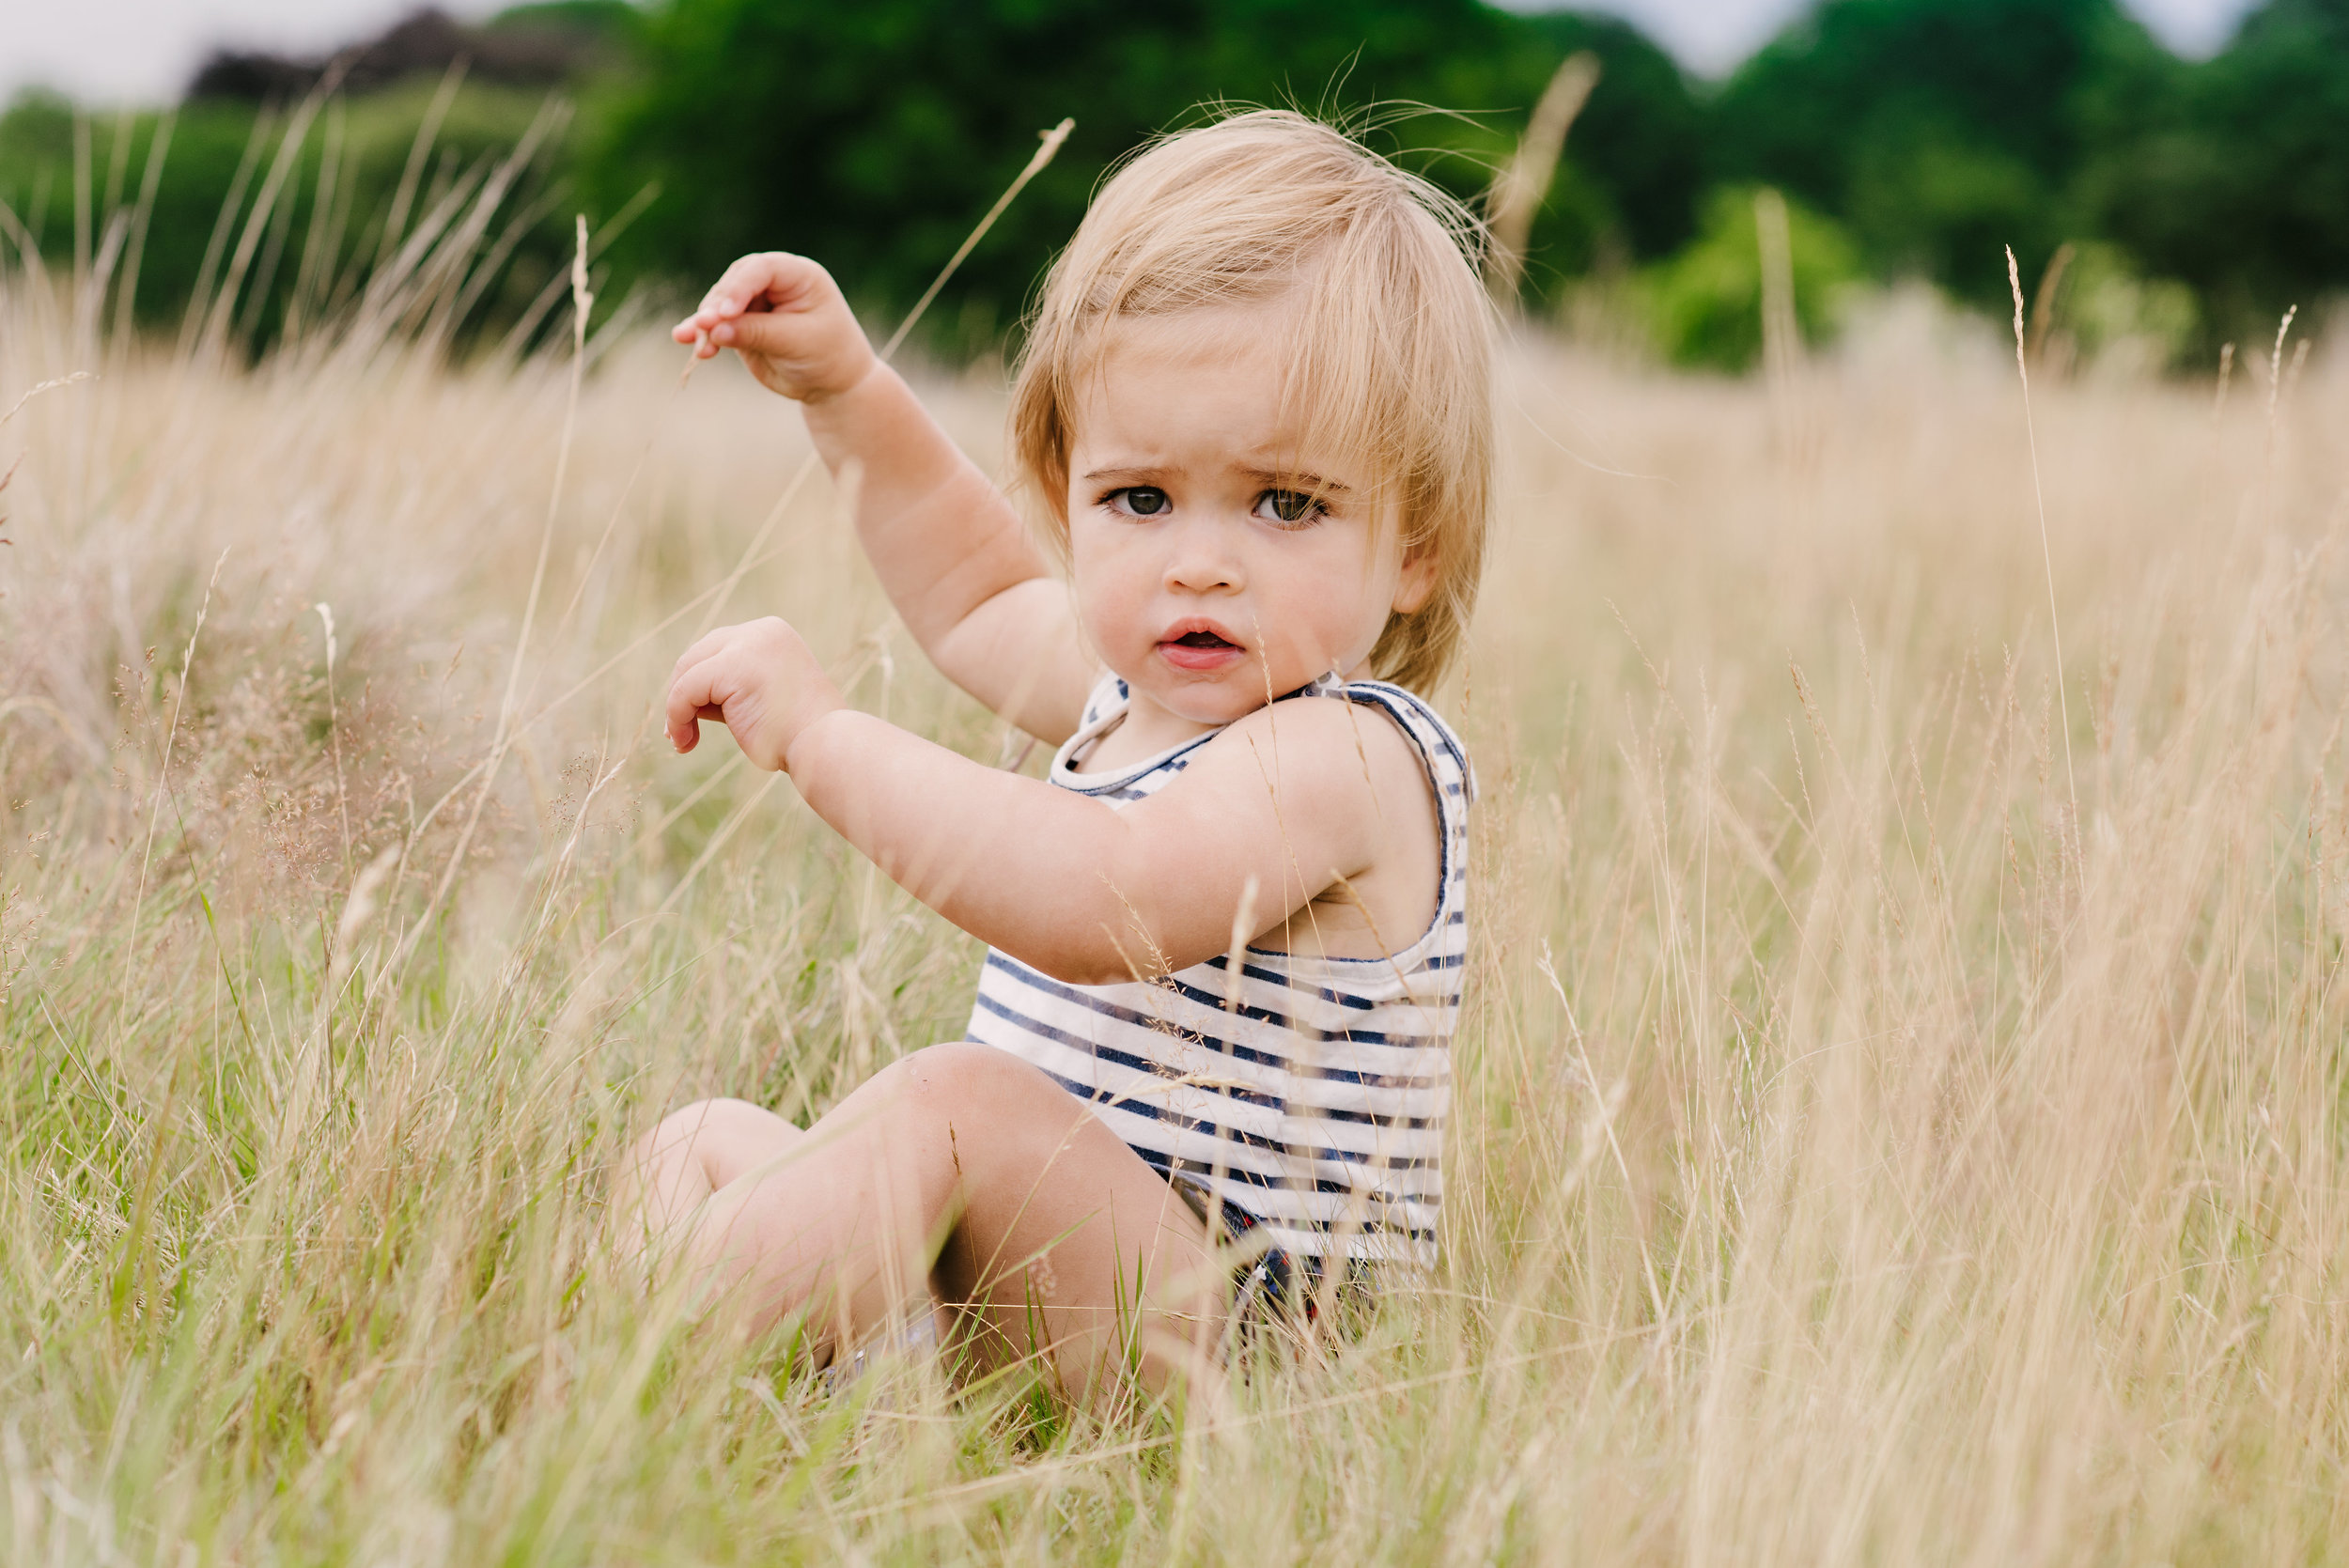 little girl sat playing with the long grass in the park | Children's Photographer Aylesbury Buckinghamshire and Thame Oxfordshire